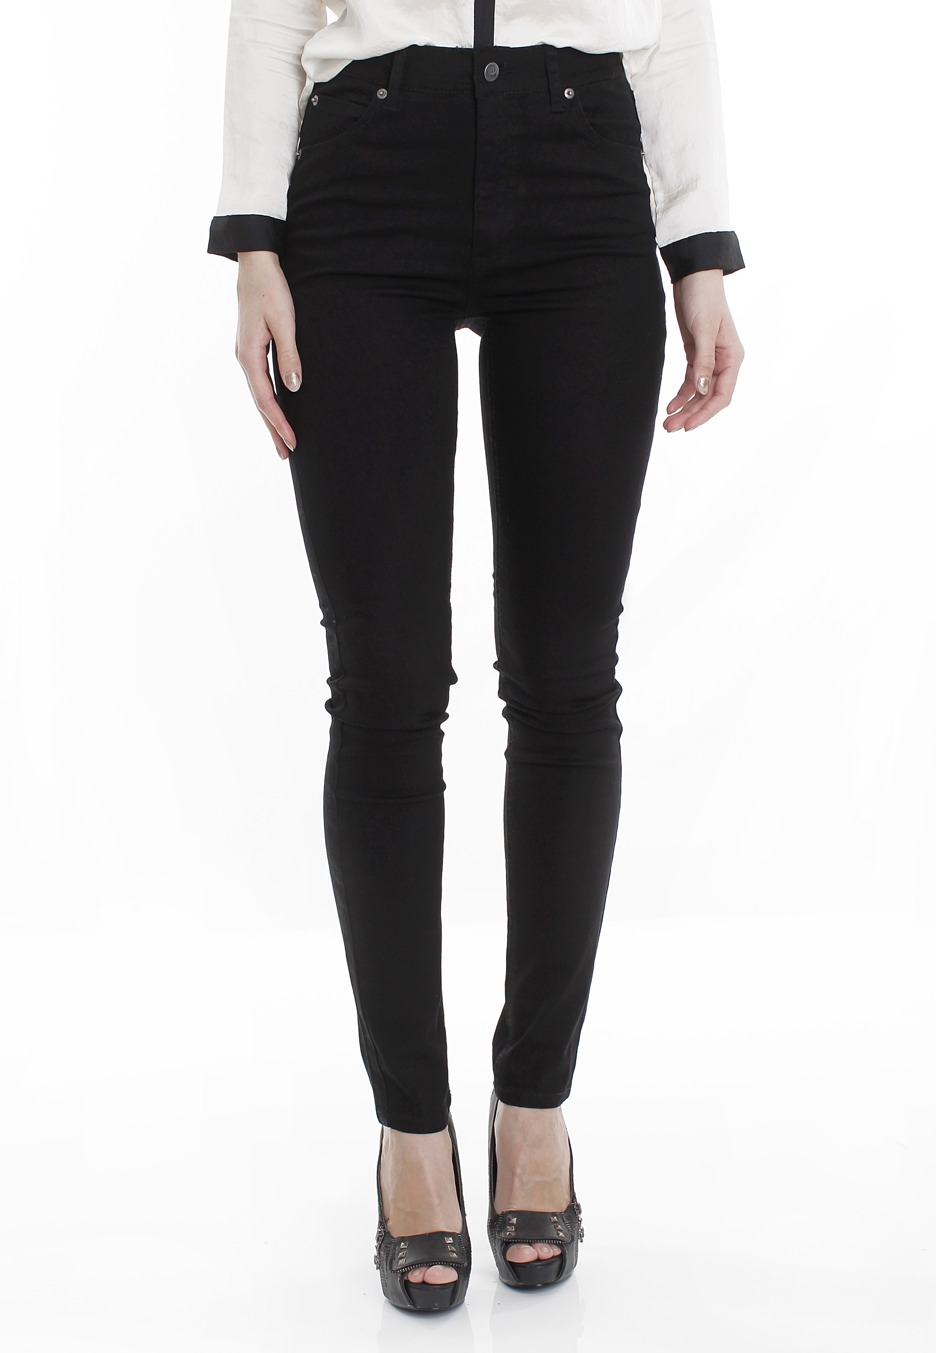 Cheap Black Jeans - Jeans Am